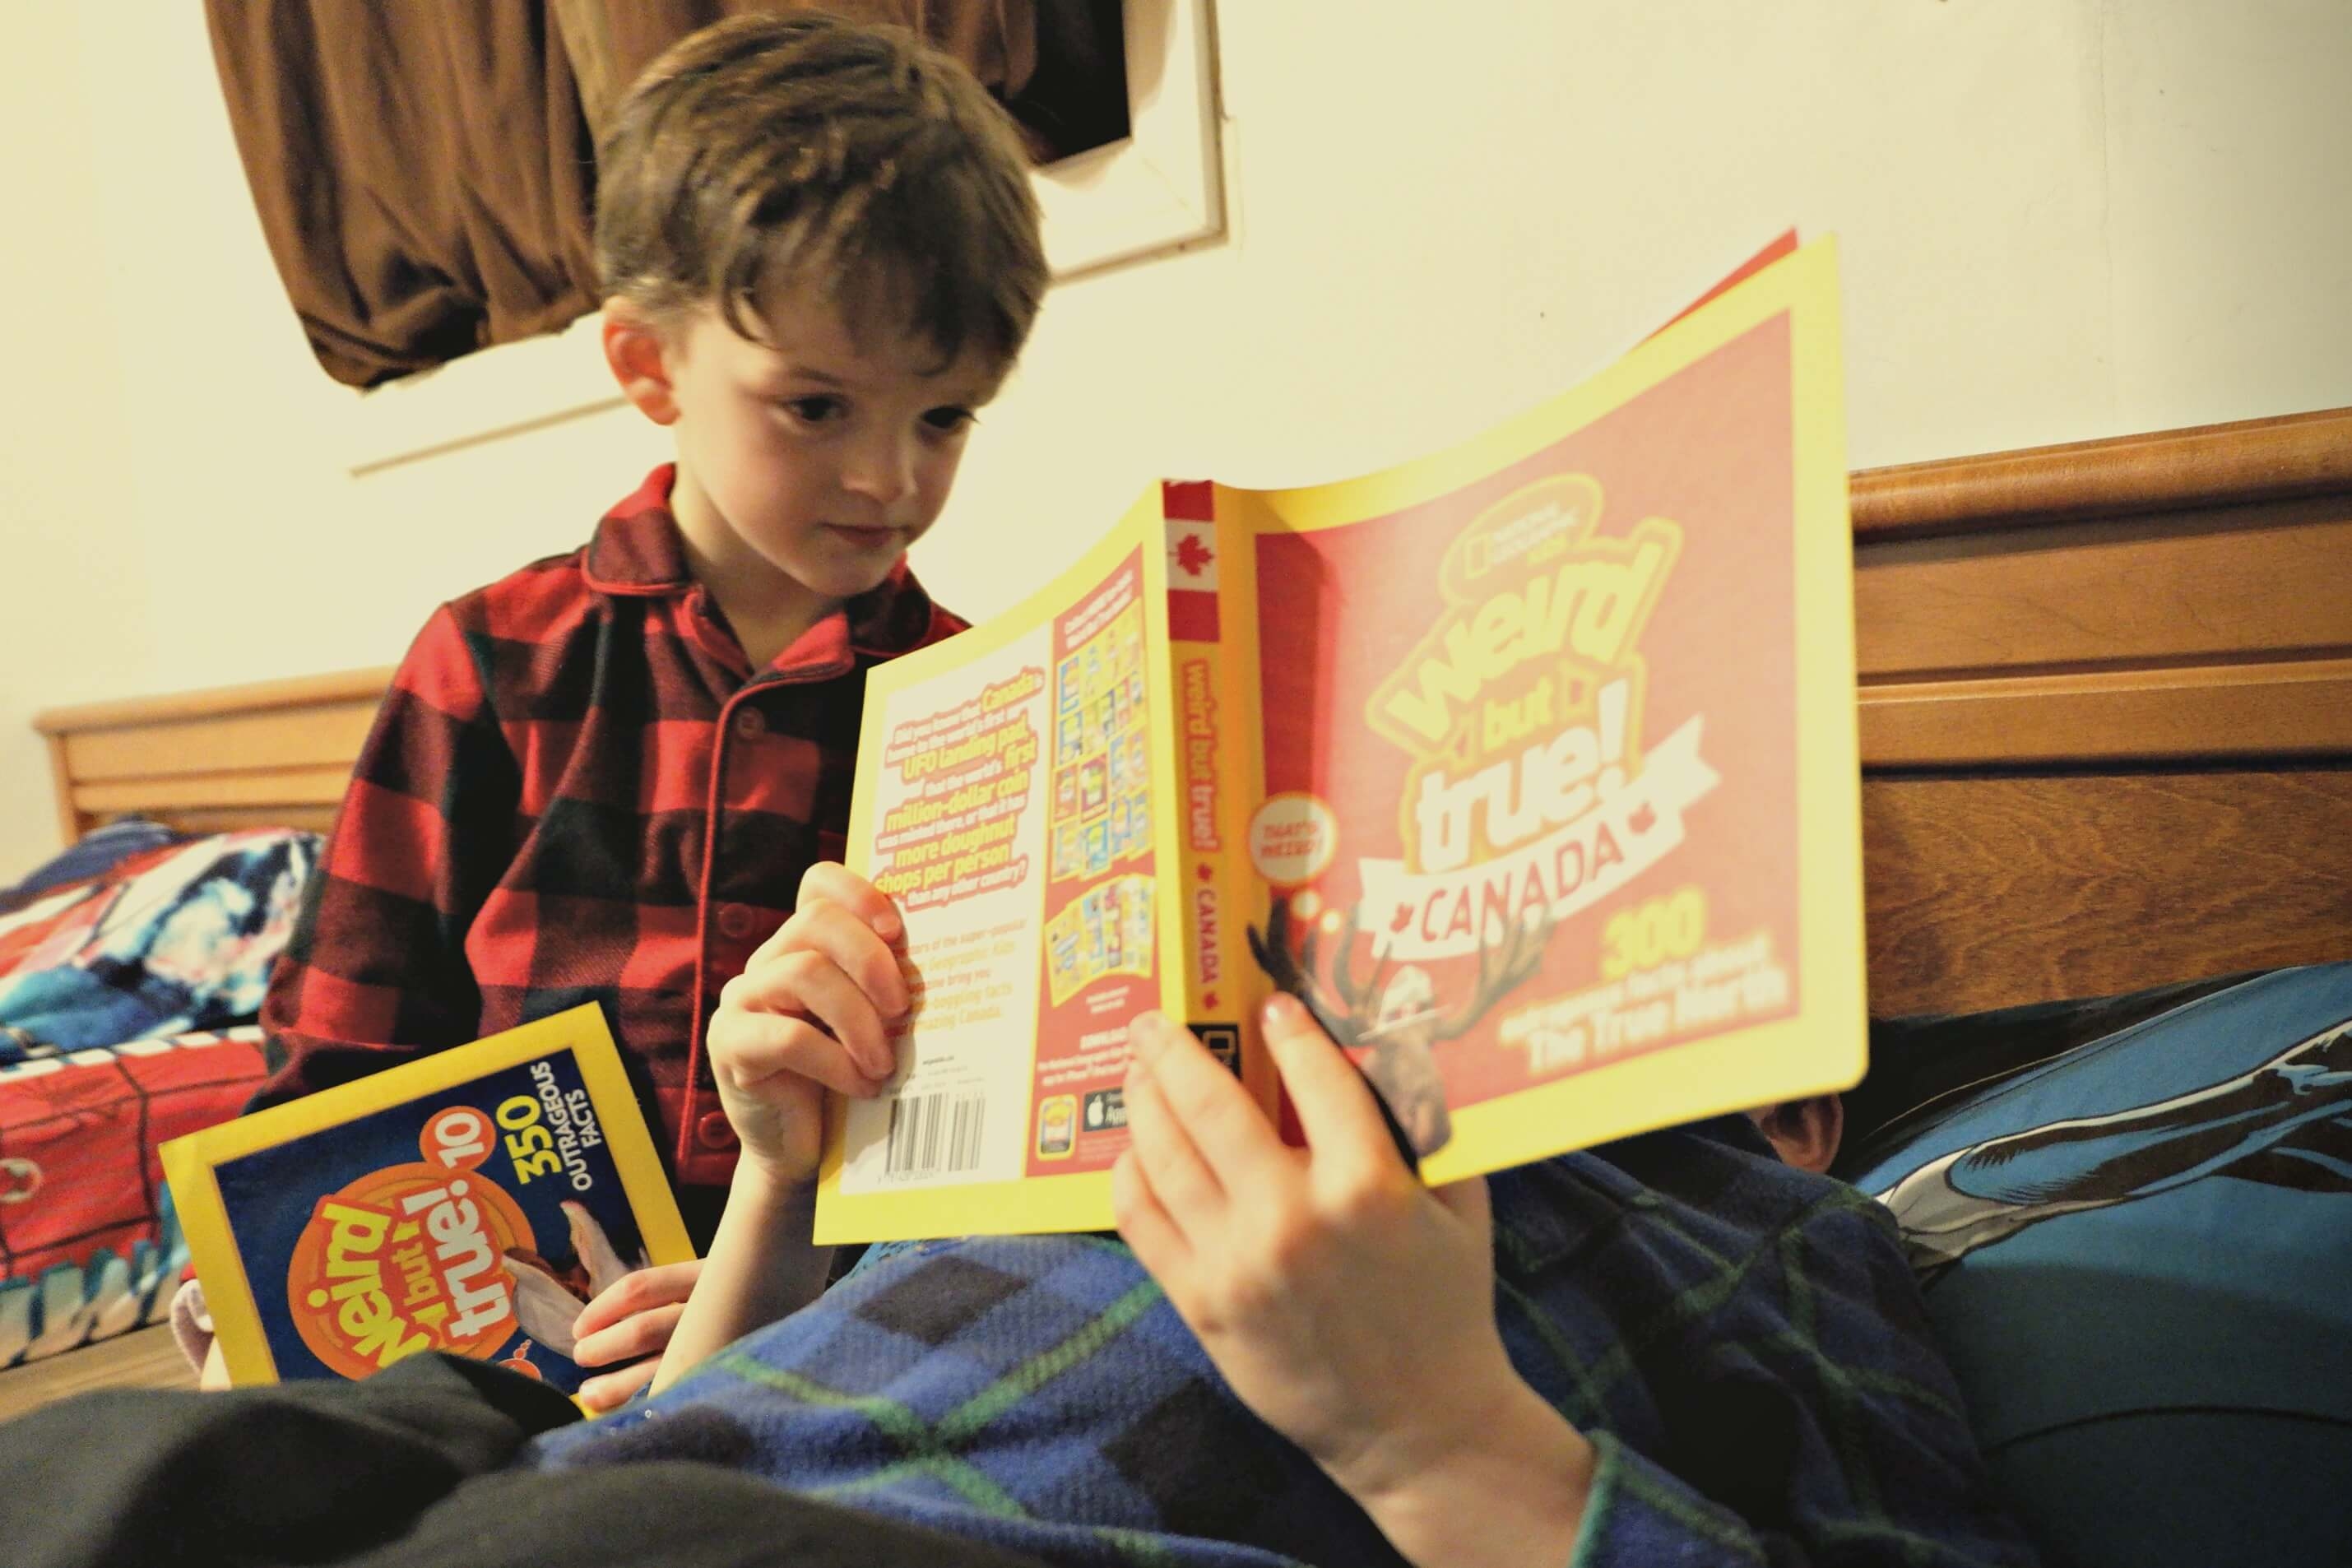 brothers reading together national geographic canada facts book weird but true bedtime reading brother kindergarten pickle planet